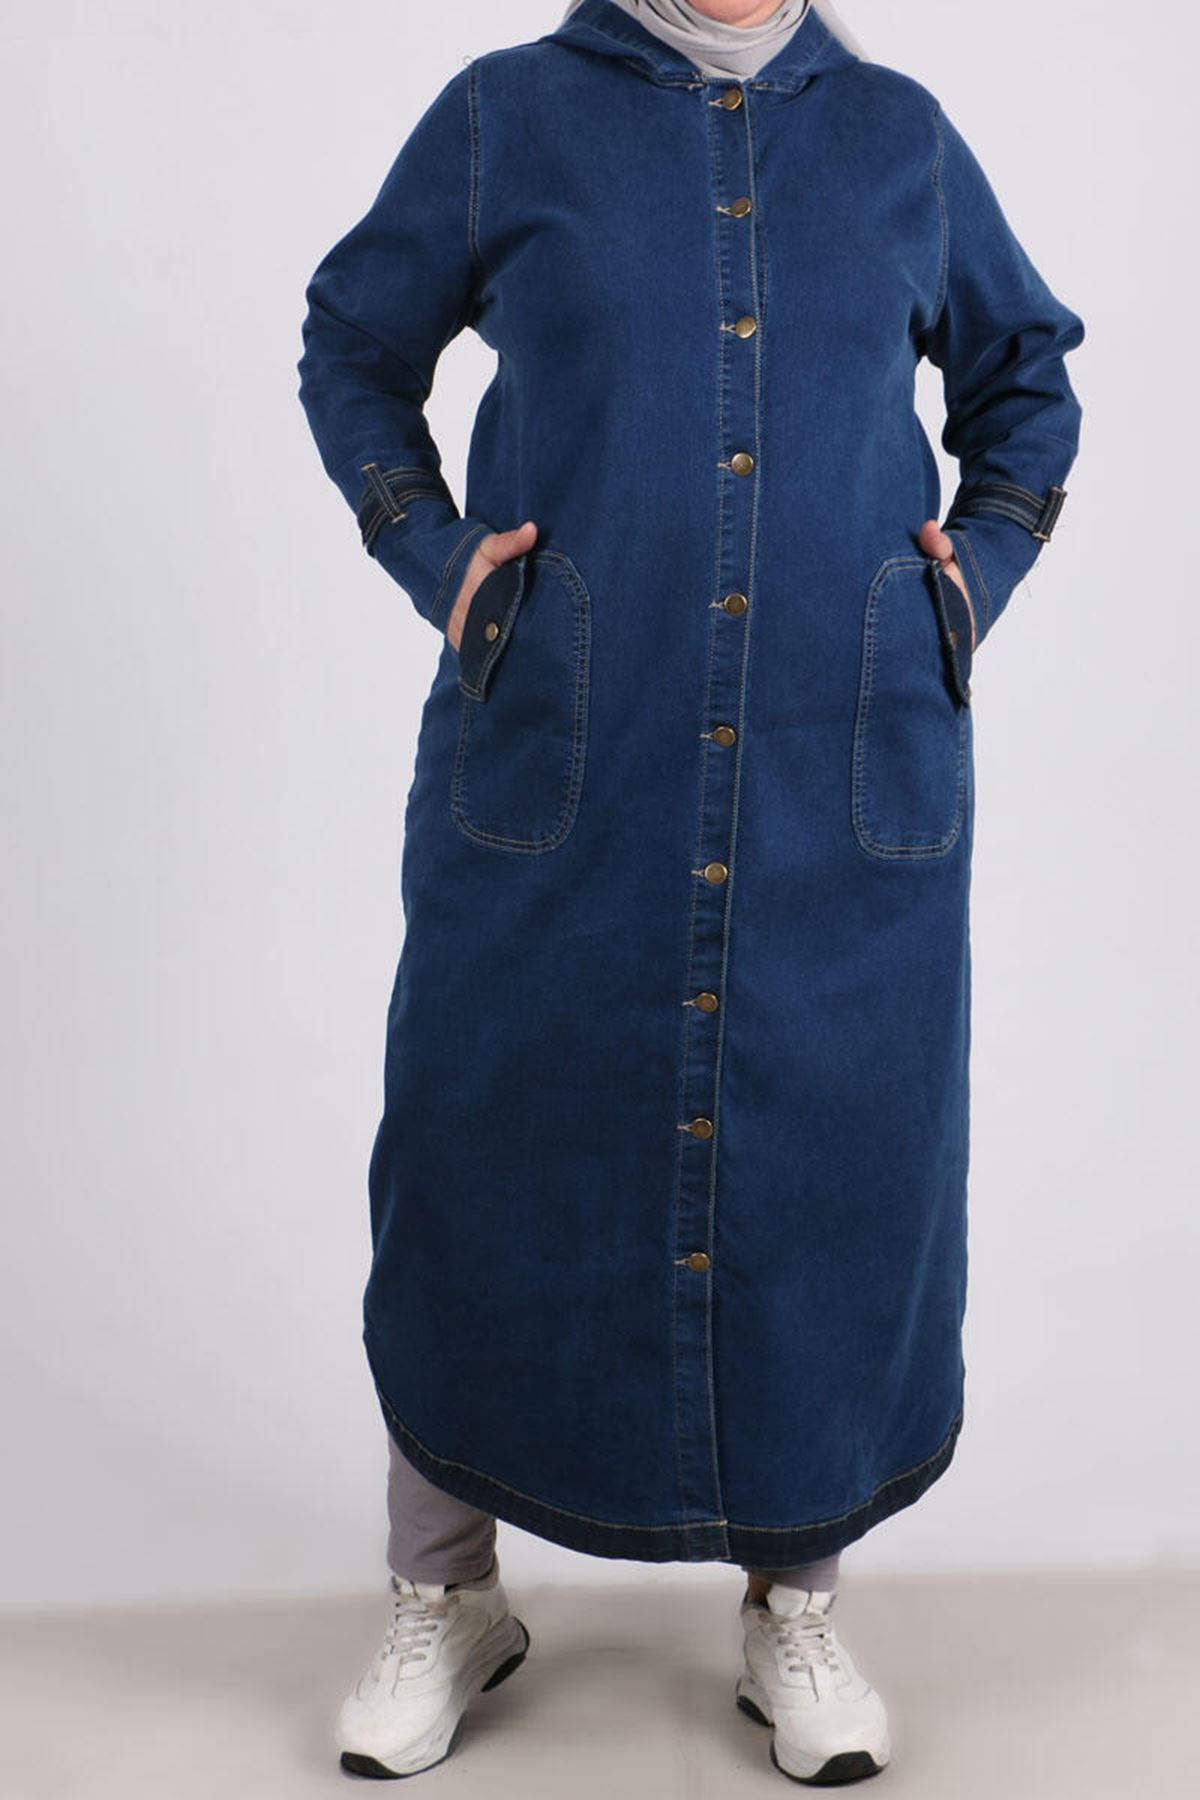 3142 Plus Size Hooded Jeans Coat- Navy Blue